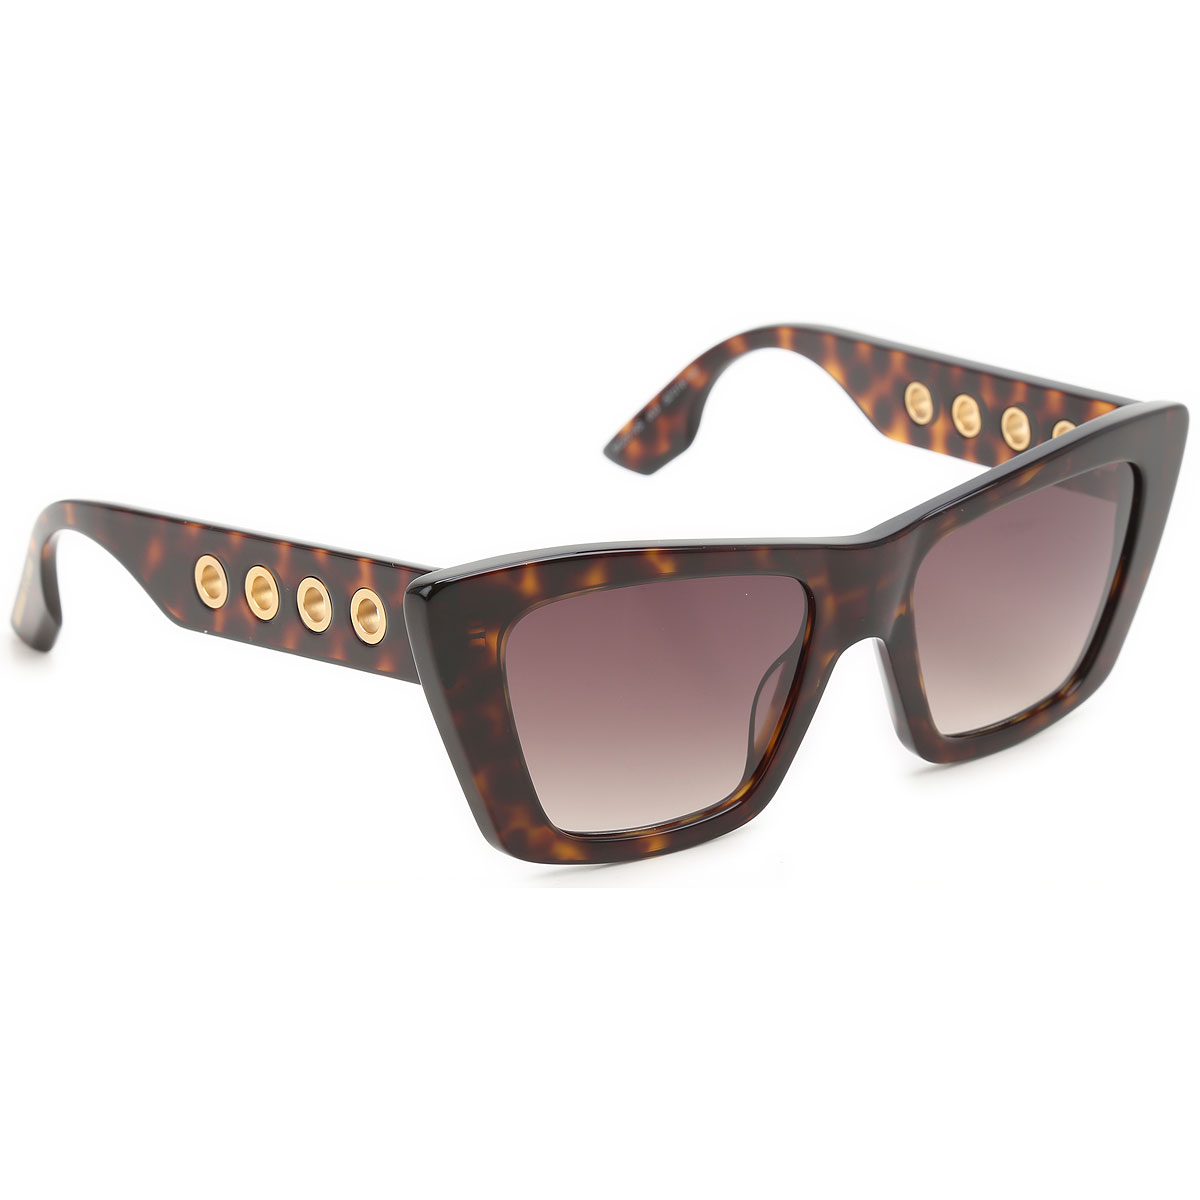 Alexander McQueen McQ Sunglasses On Sale in Outlet, 2019